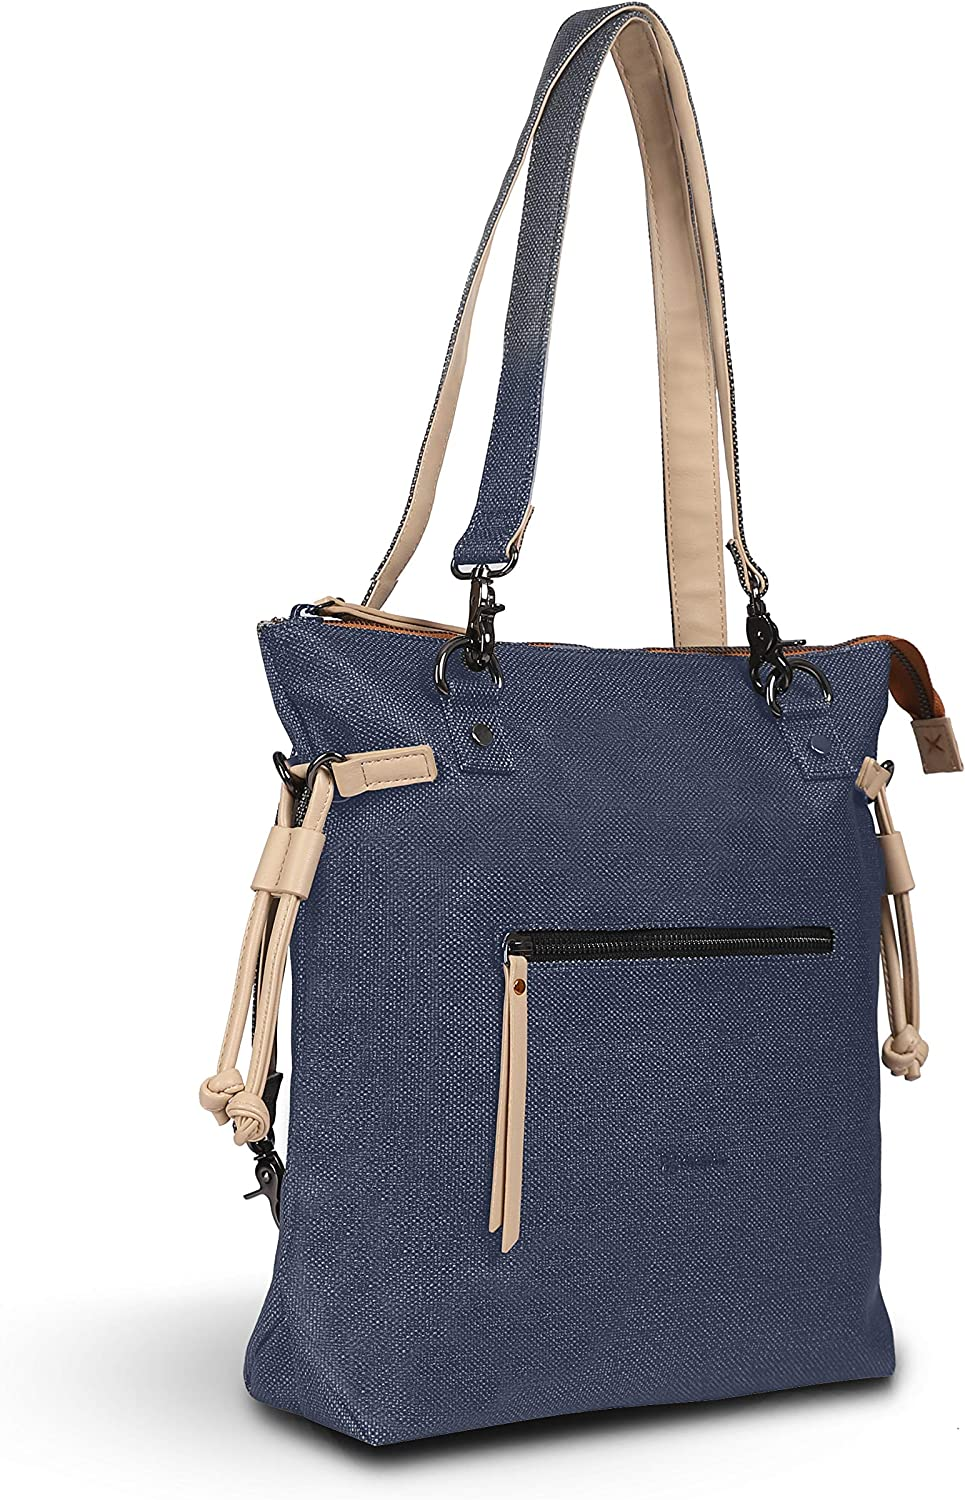 Sherpani Citizen, Convertible Backpack Tote, Backpack Handbag, Canvas Totepack, Fashion Handbag for Women Fits 10 Inch Tablet